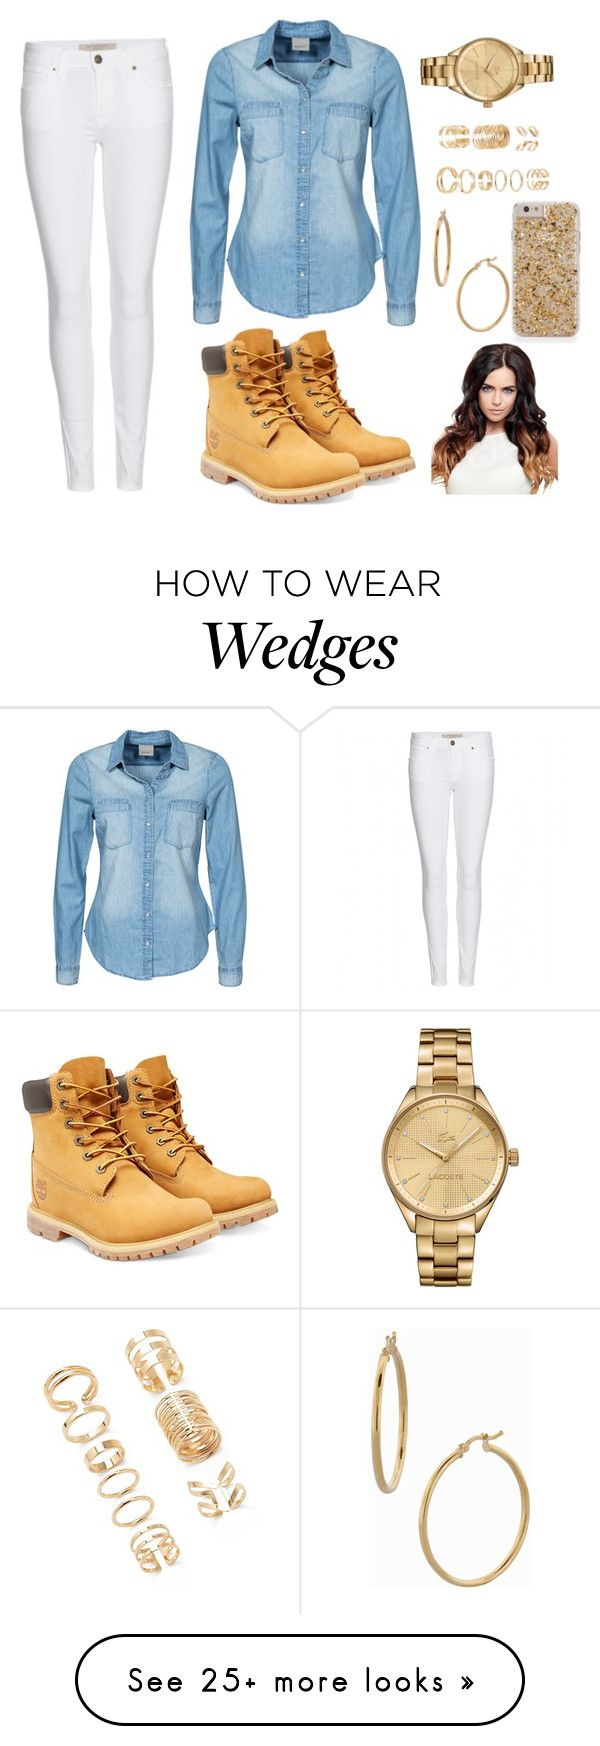 """Golden"" by blueconverse1 on Polyvore featuring Burberry, Vero Moda, Lacoste, Forever 21, Bony Levy and Timberland"